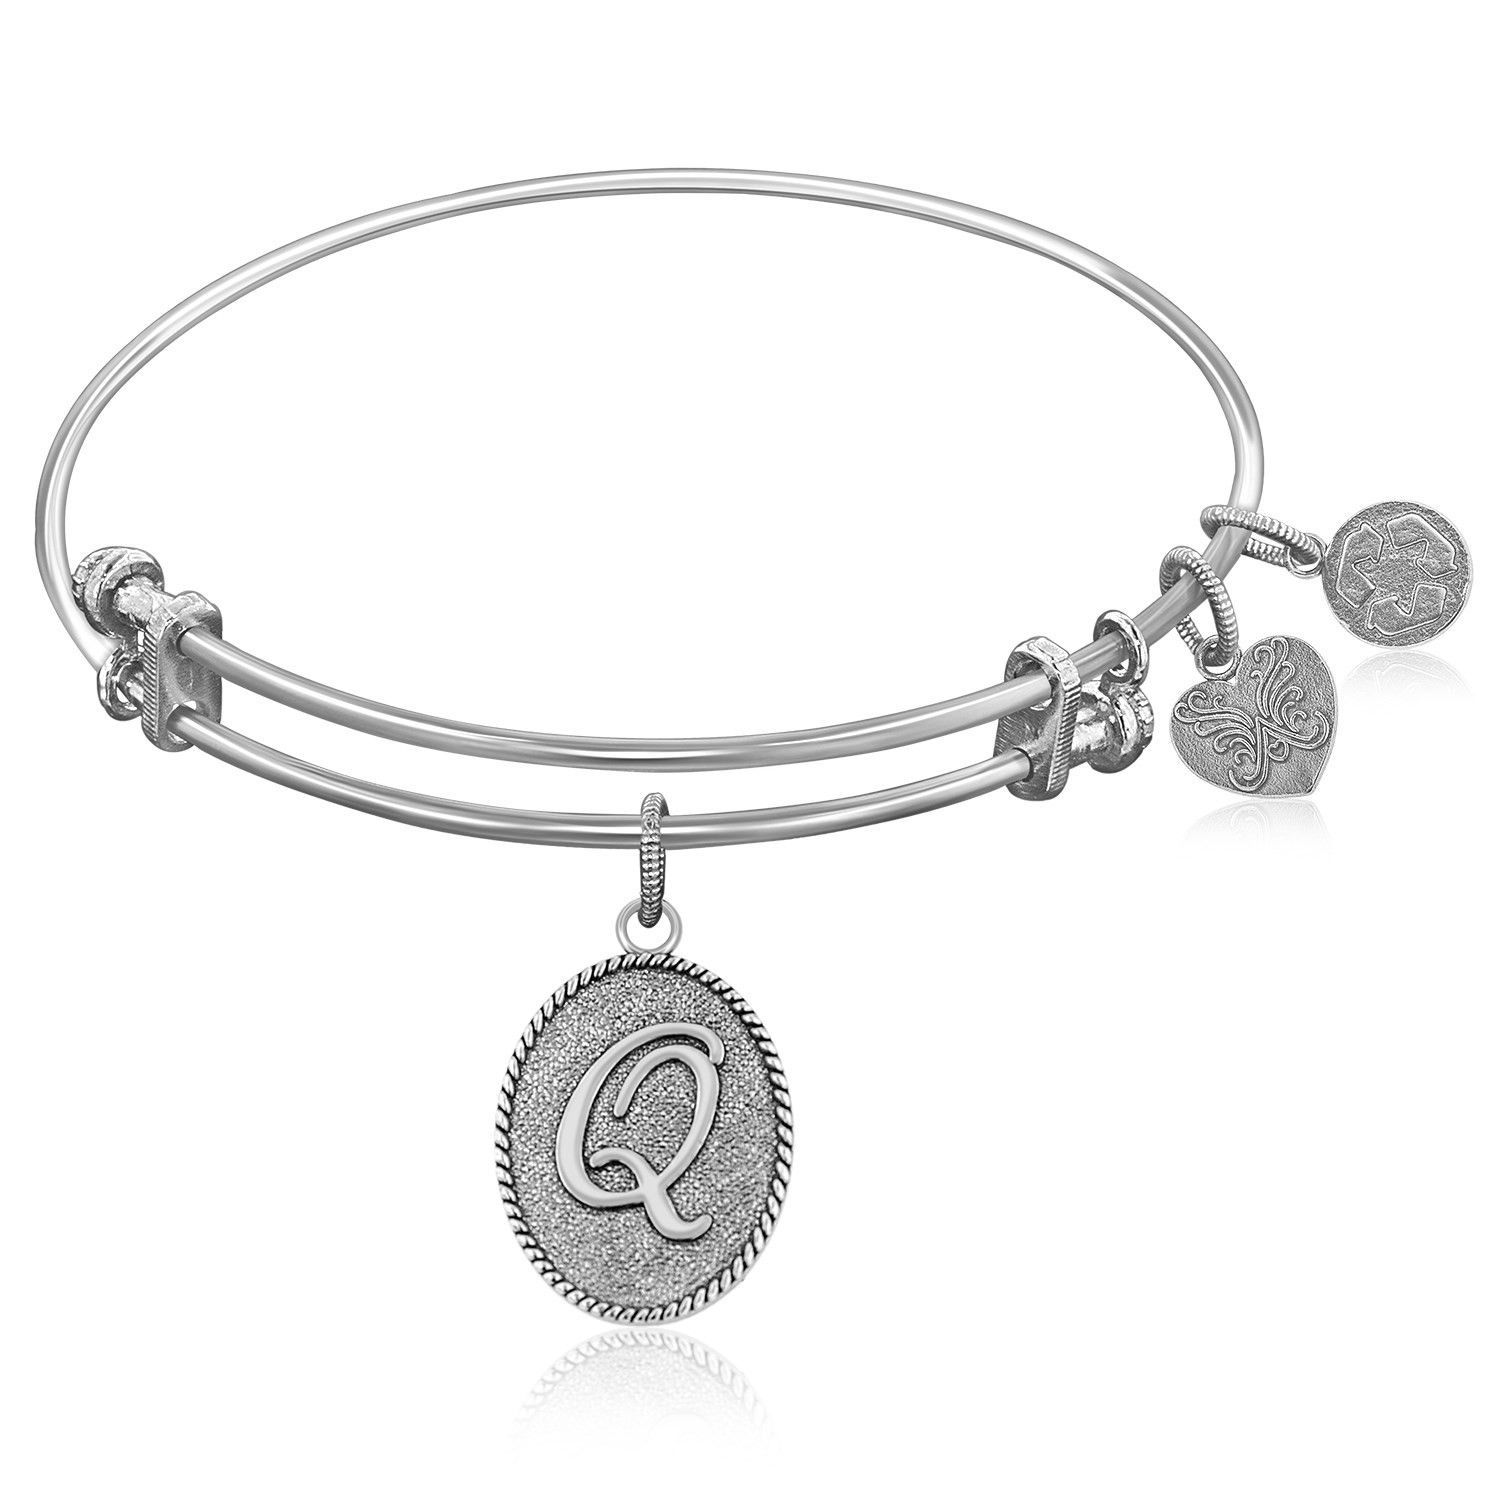 Expandable Bangle in White Tone Brass with Initial Q Symbol